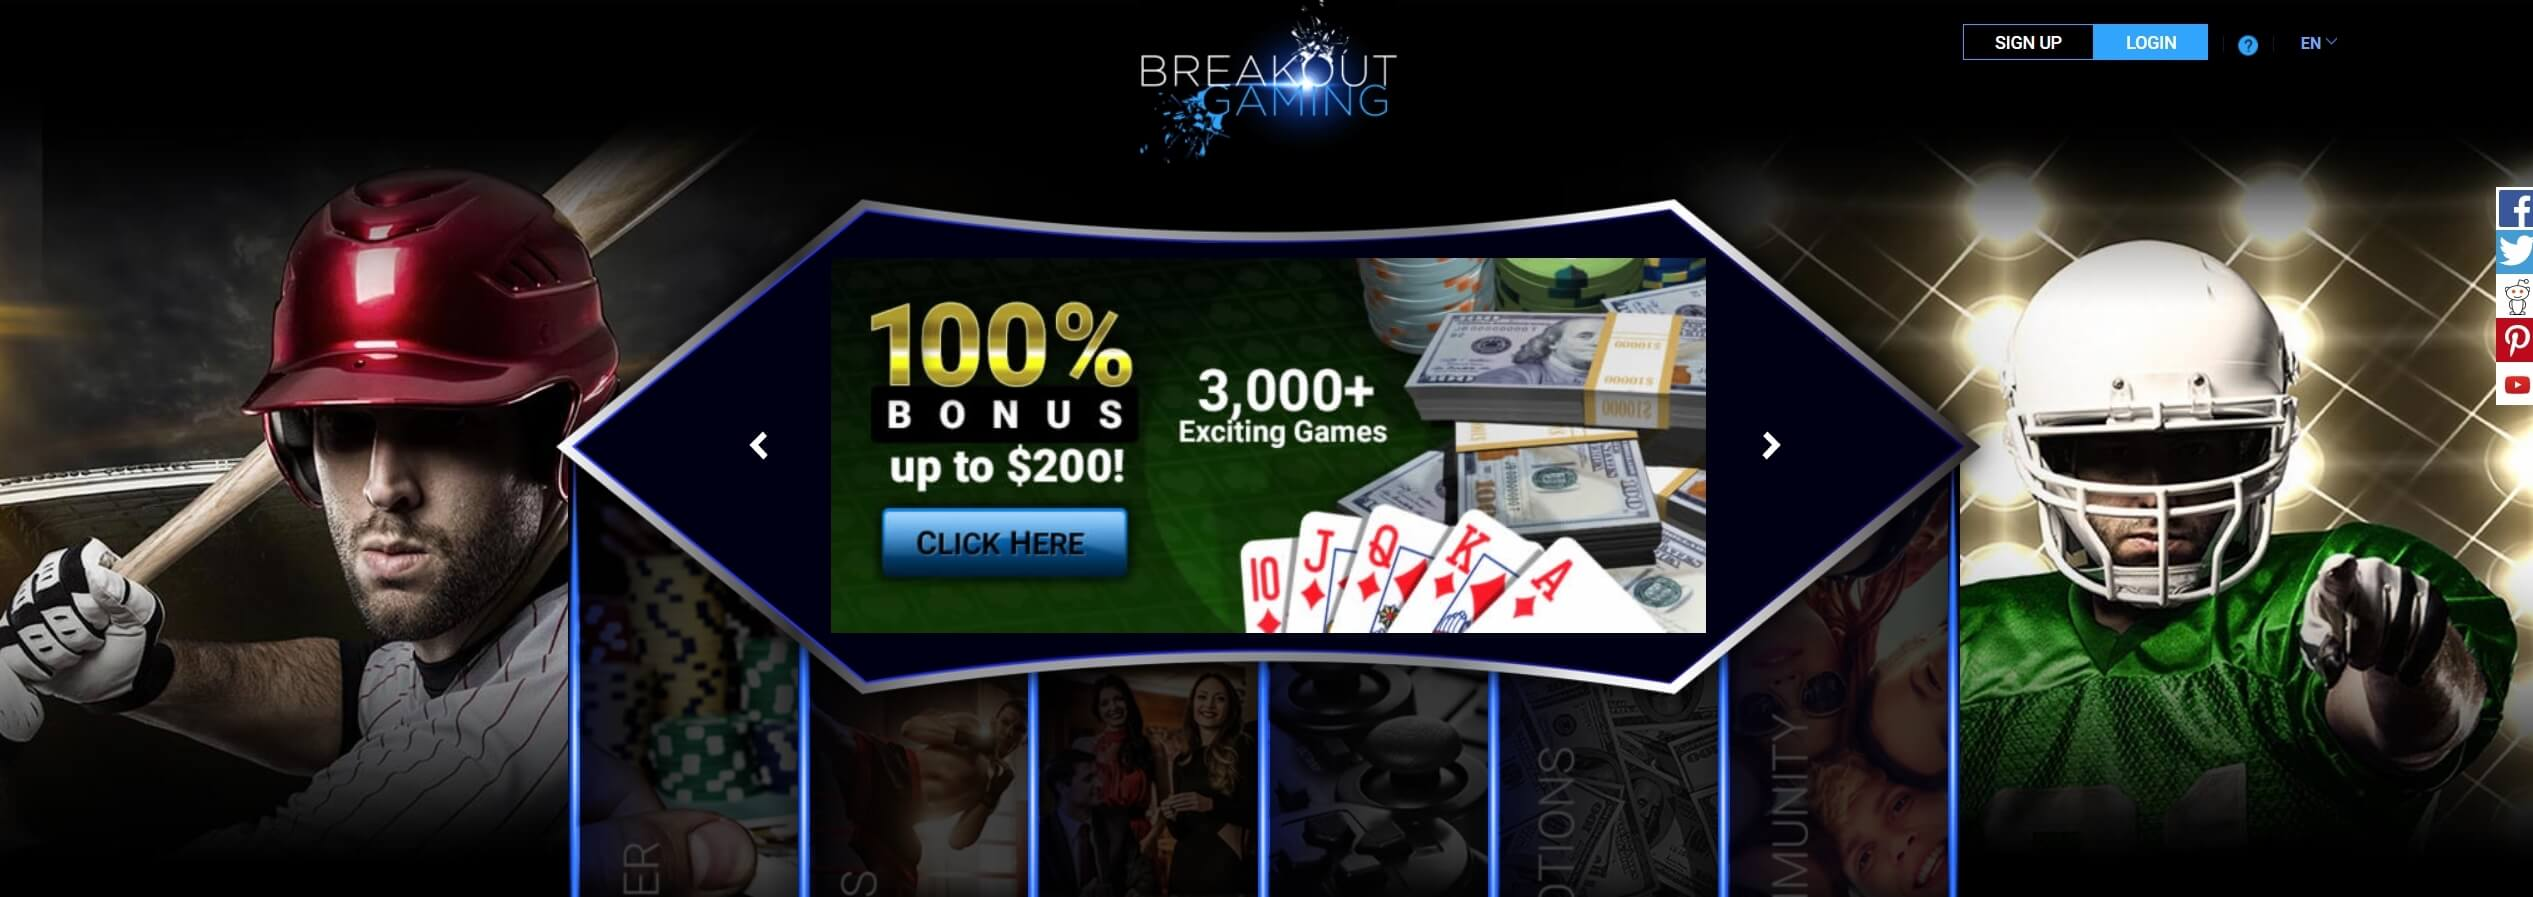 breakout-step-1